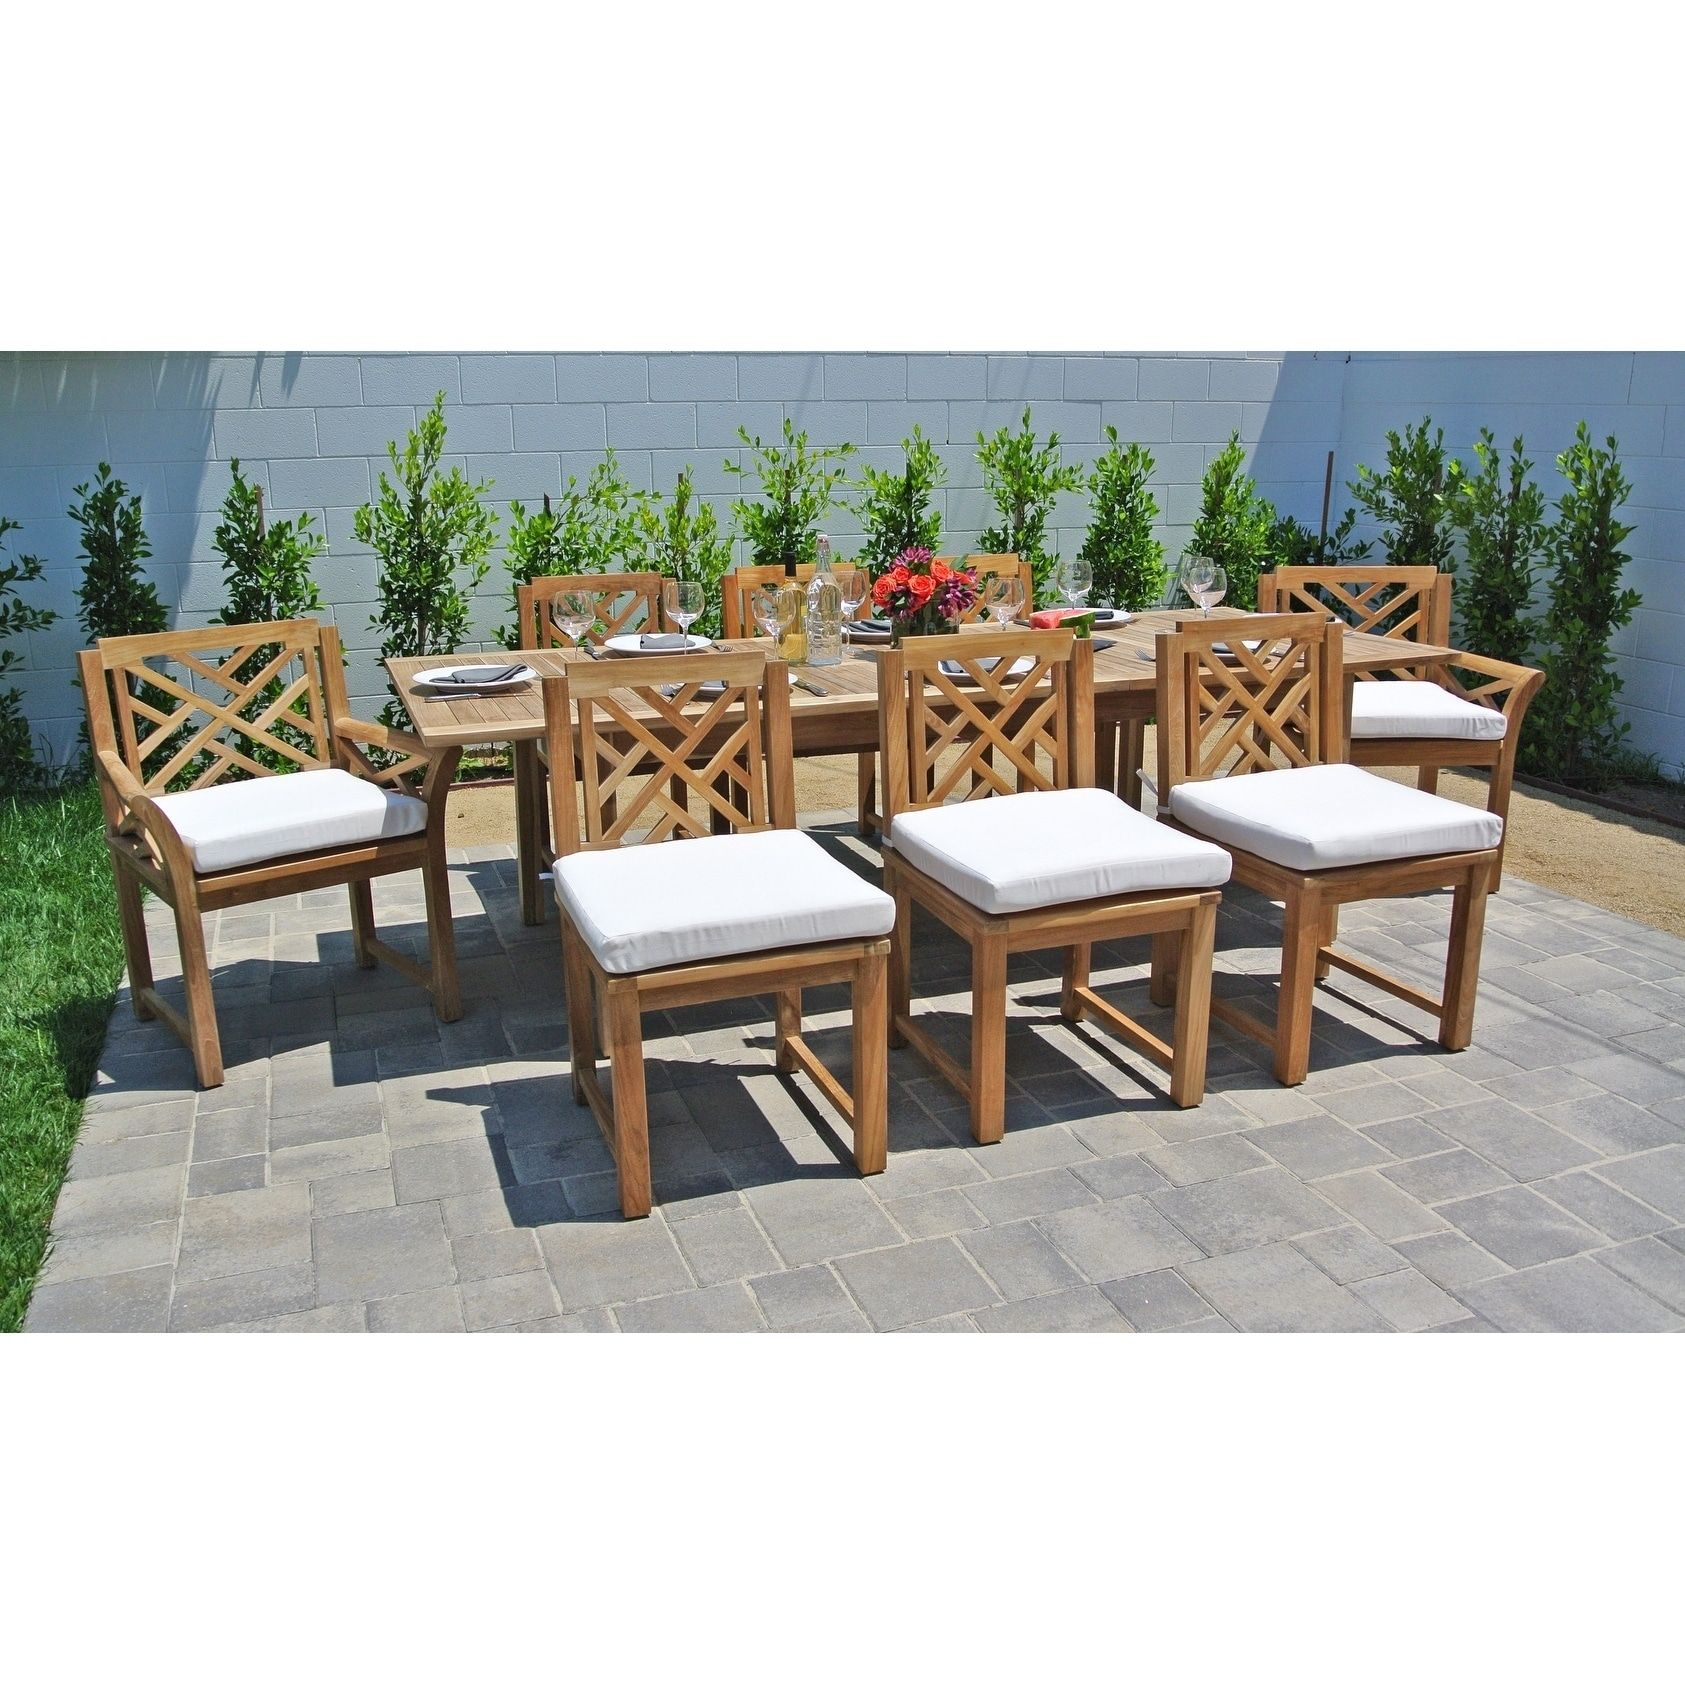 9 Pc Monterey Teak Outdoor Patio Furniture Dining Set With Expansion Table.  Sunbrella Cushions. (Brown/Beige), Tan, Size 9 Piece Sets